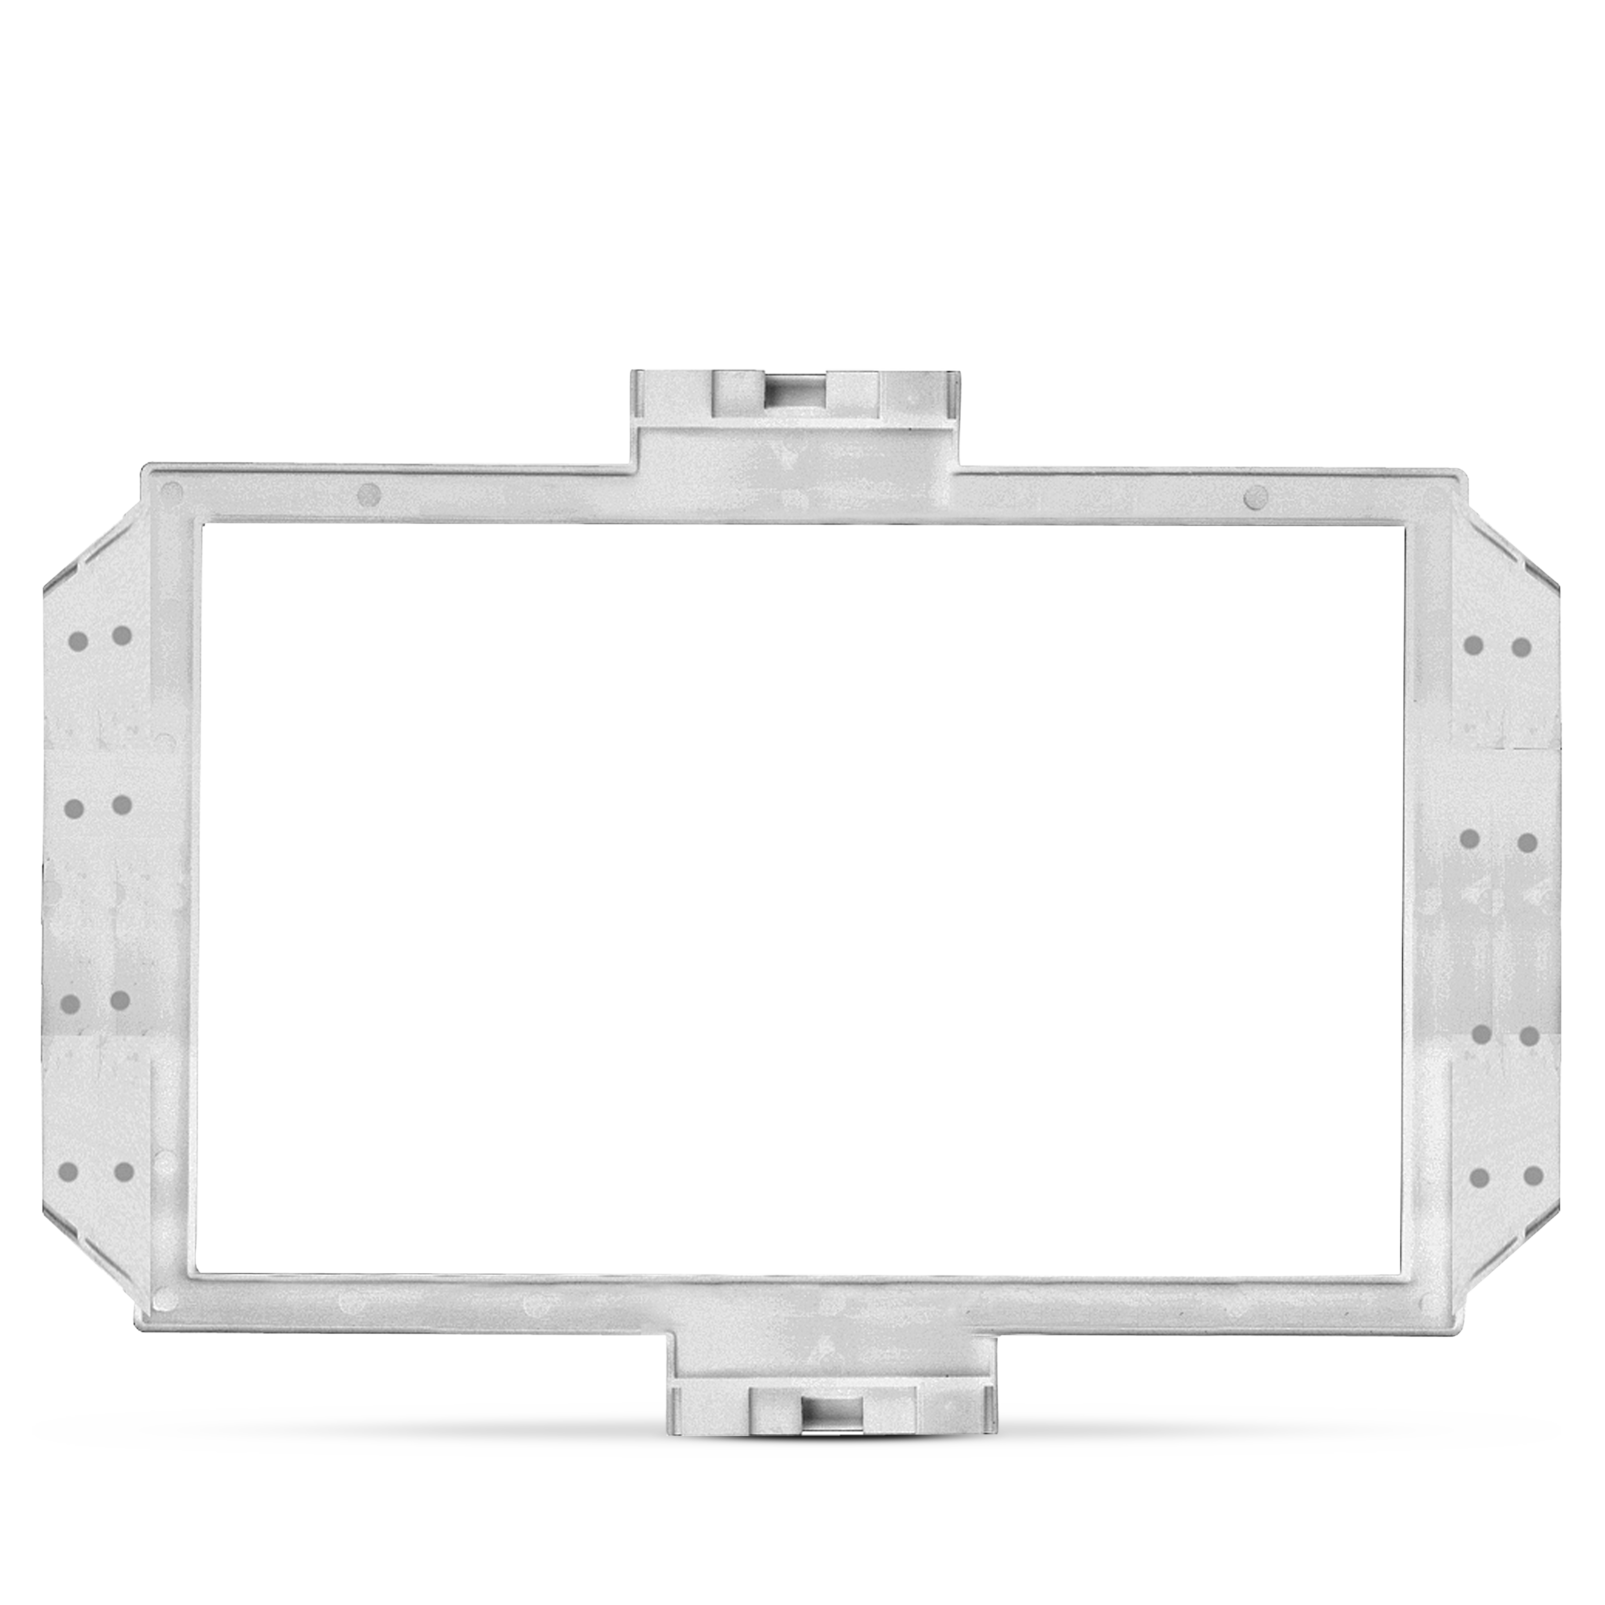 RIF55 - White - In-Wall Speaker Frames for JBL HTI55 Speakers - Hero